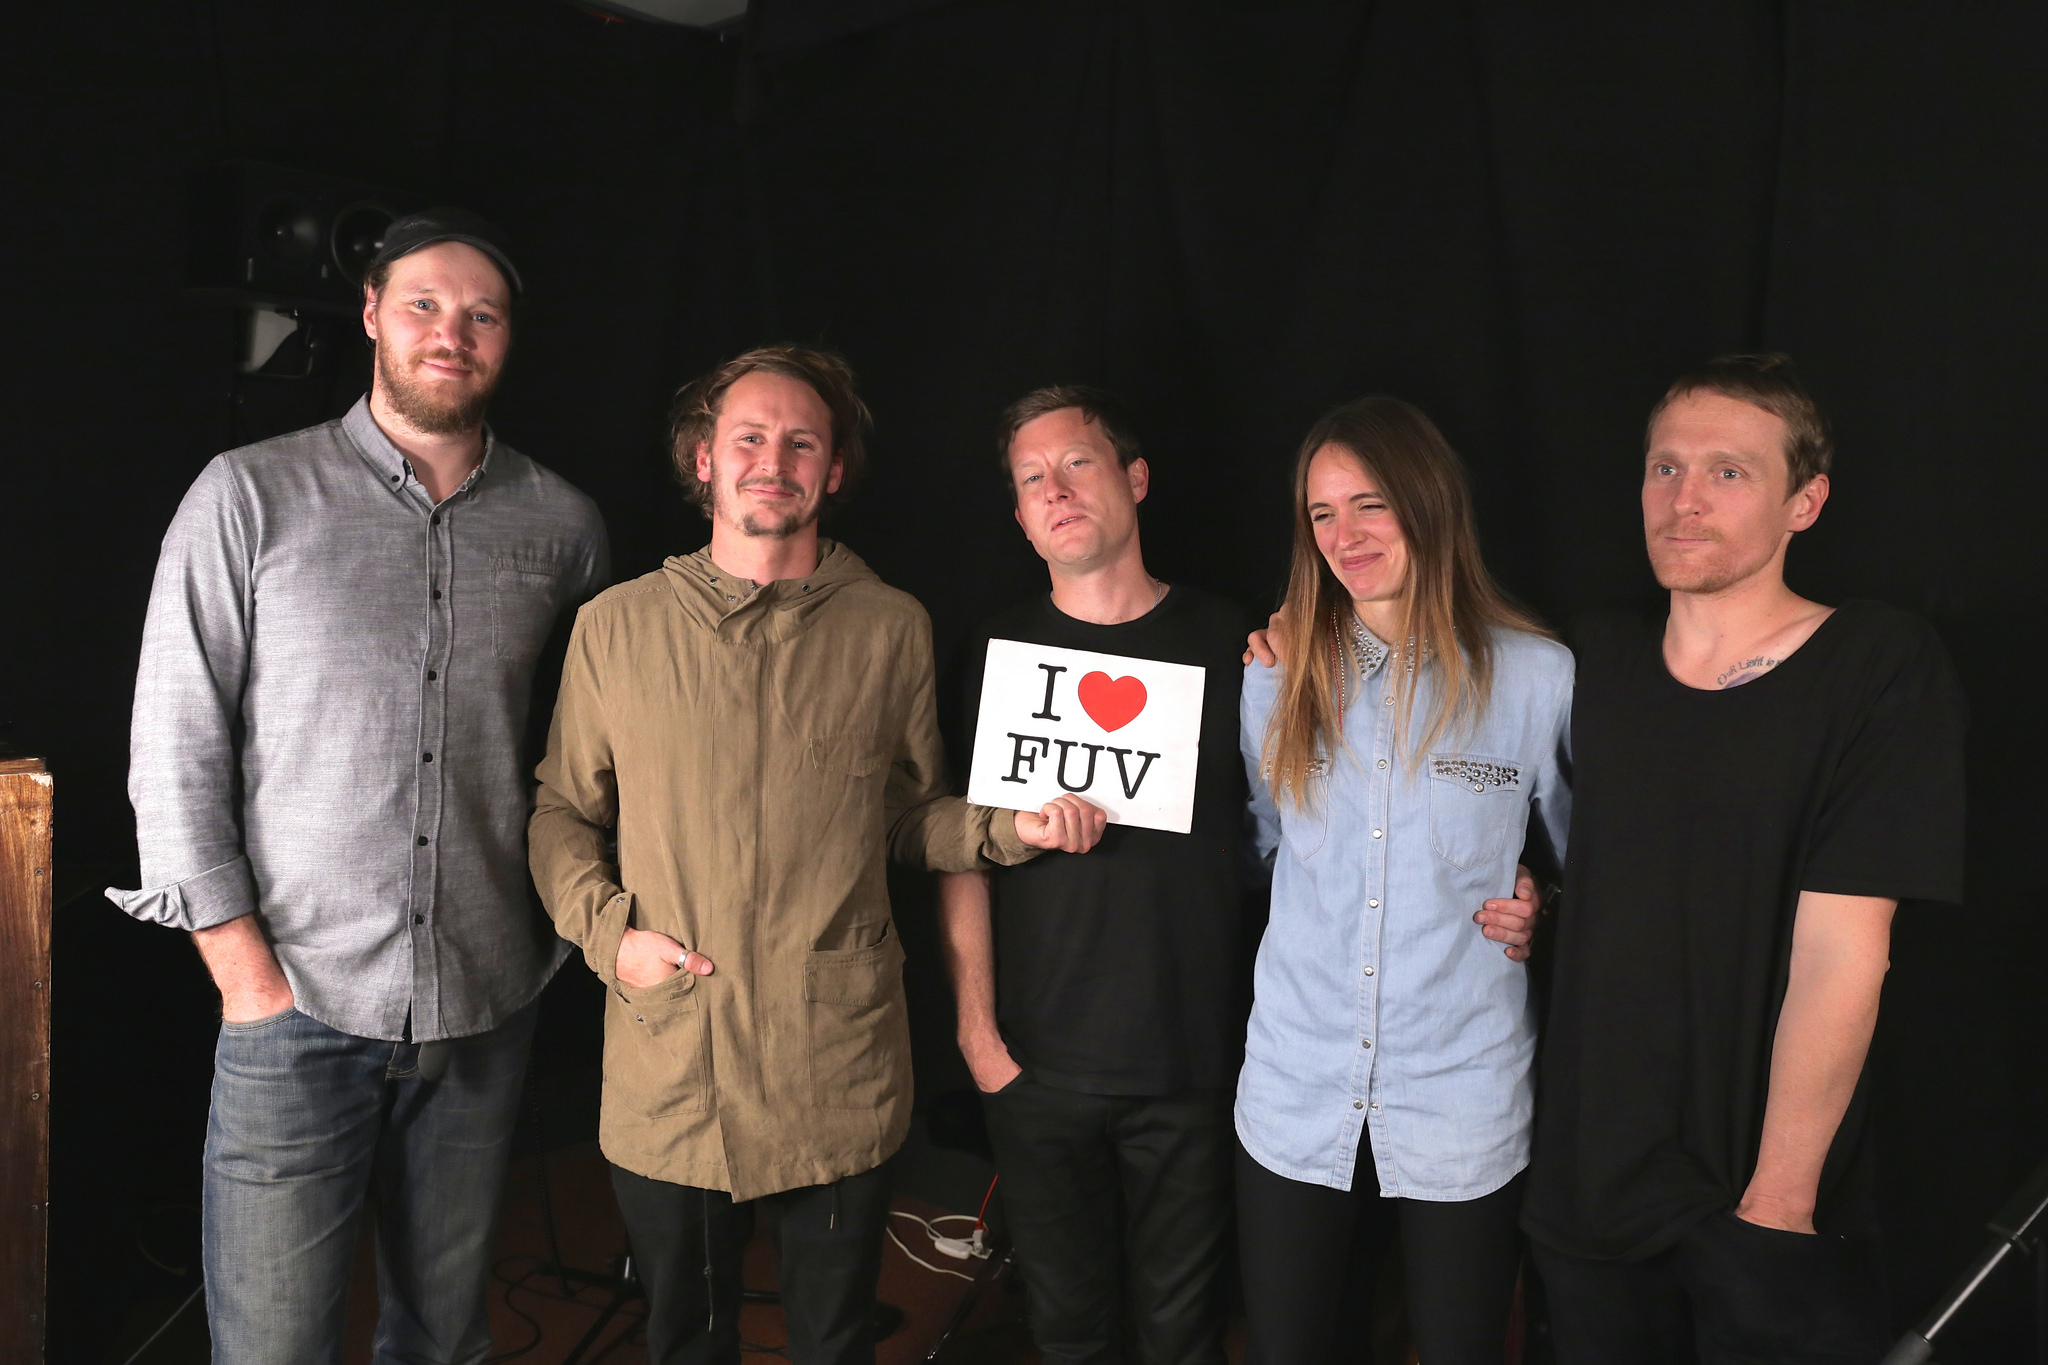 Hear an FUV Live session with Ben Howard tonight at 9.